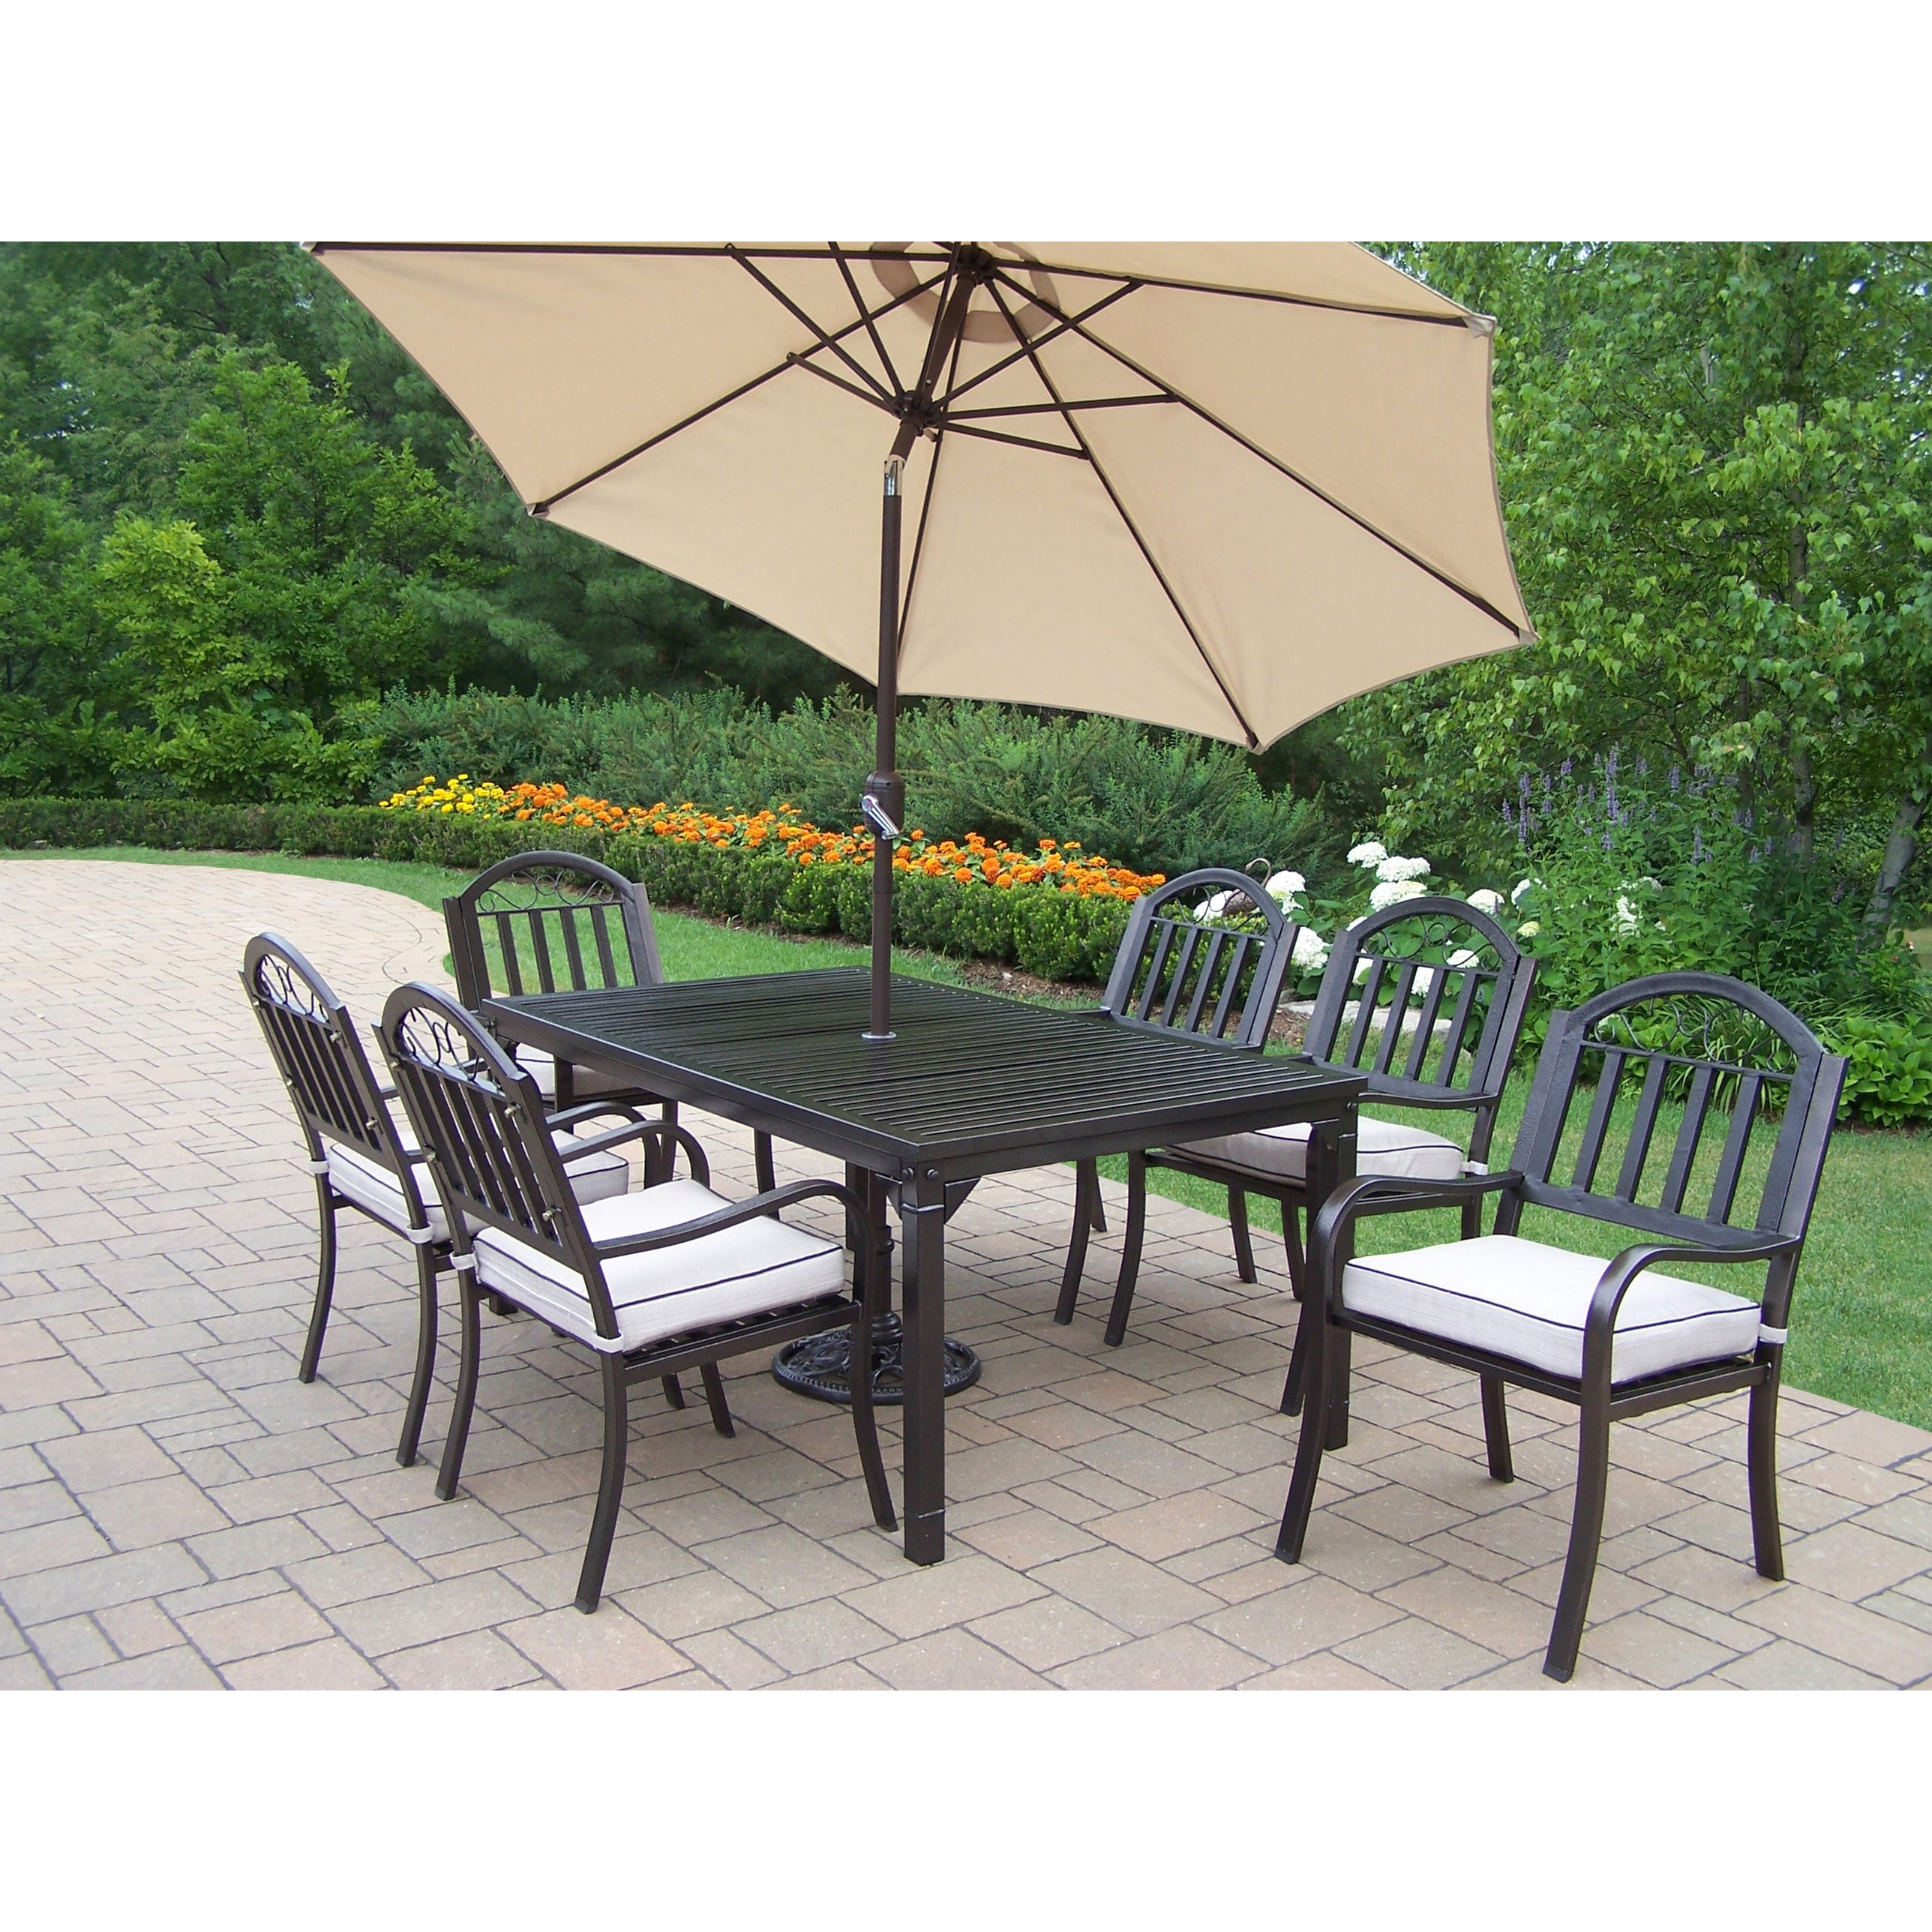 Oakland Living Corporation Hometown 9 Pc Dining Set with Rectangle Table